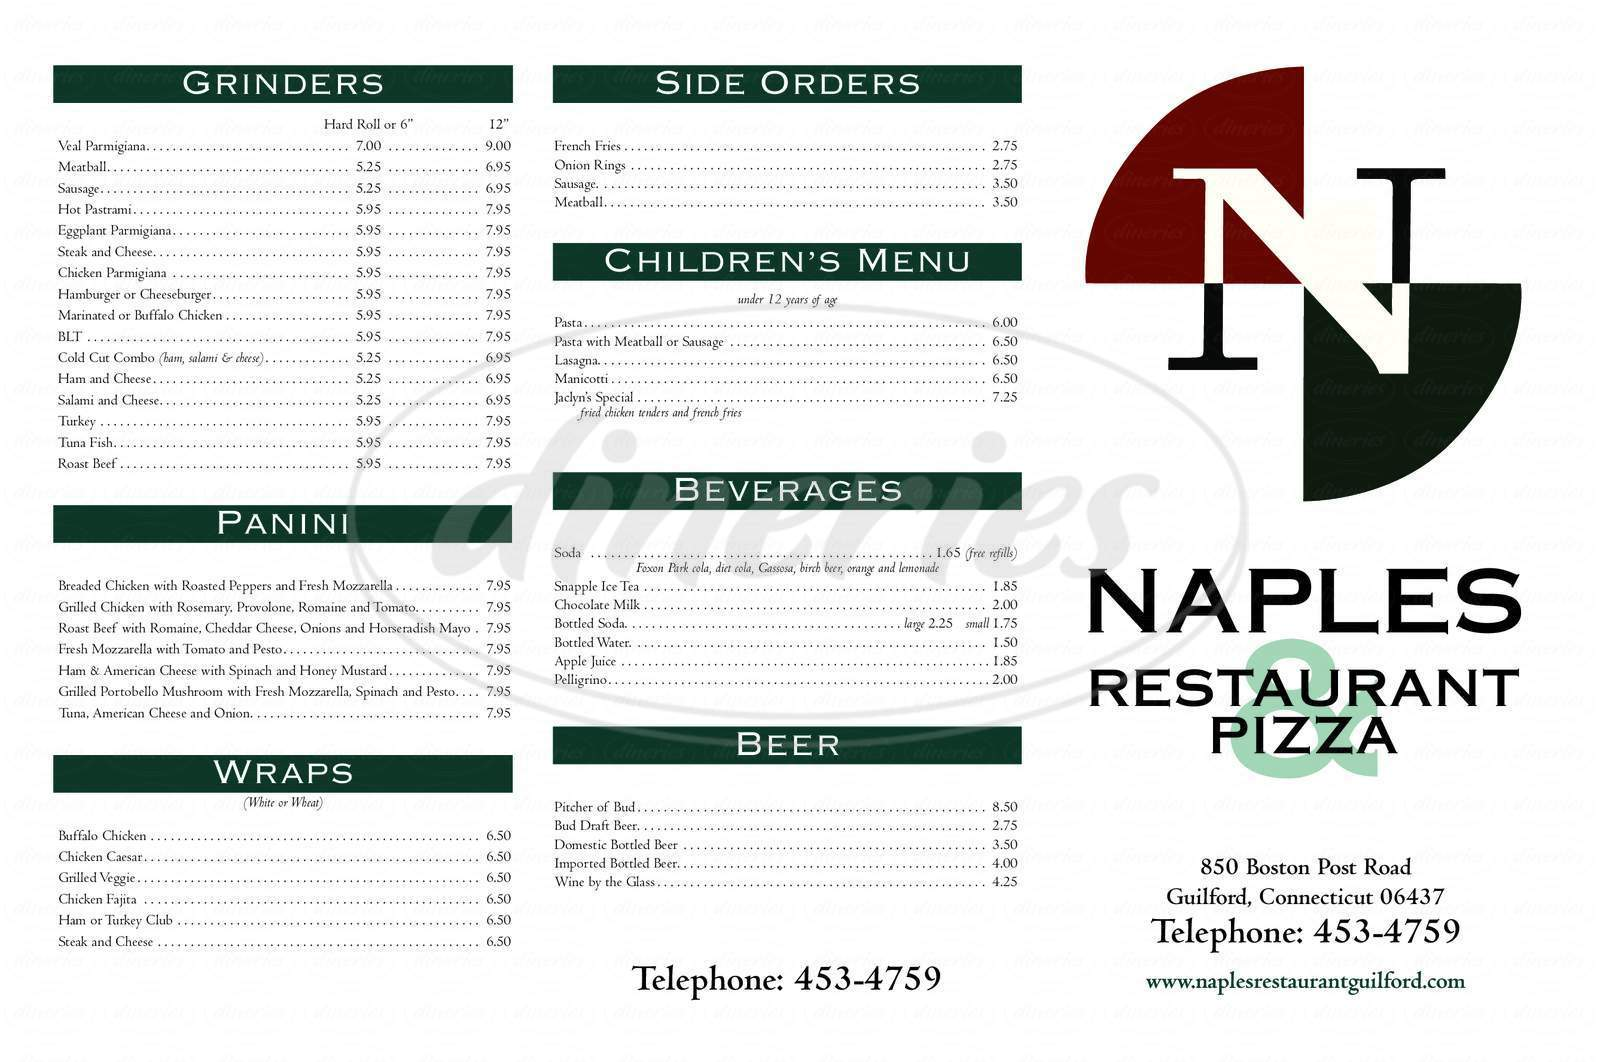 menu for Naples Restaurant & Pizza Inc